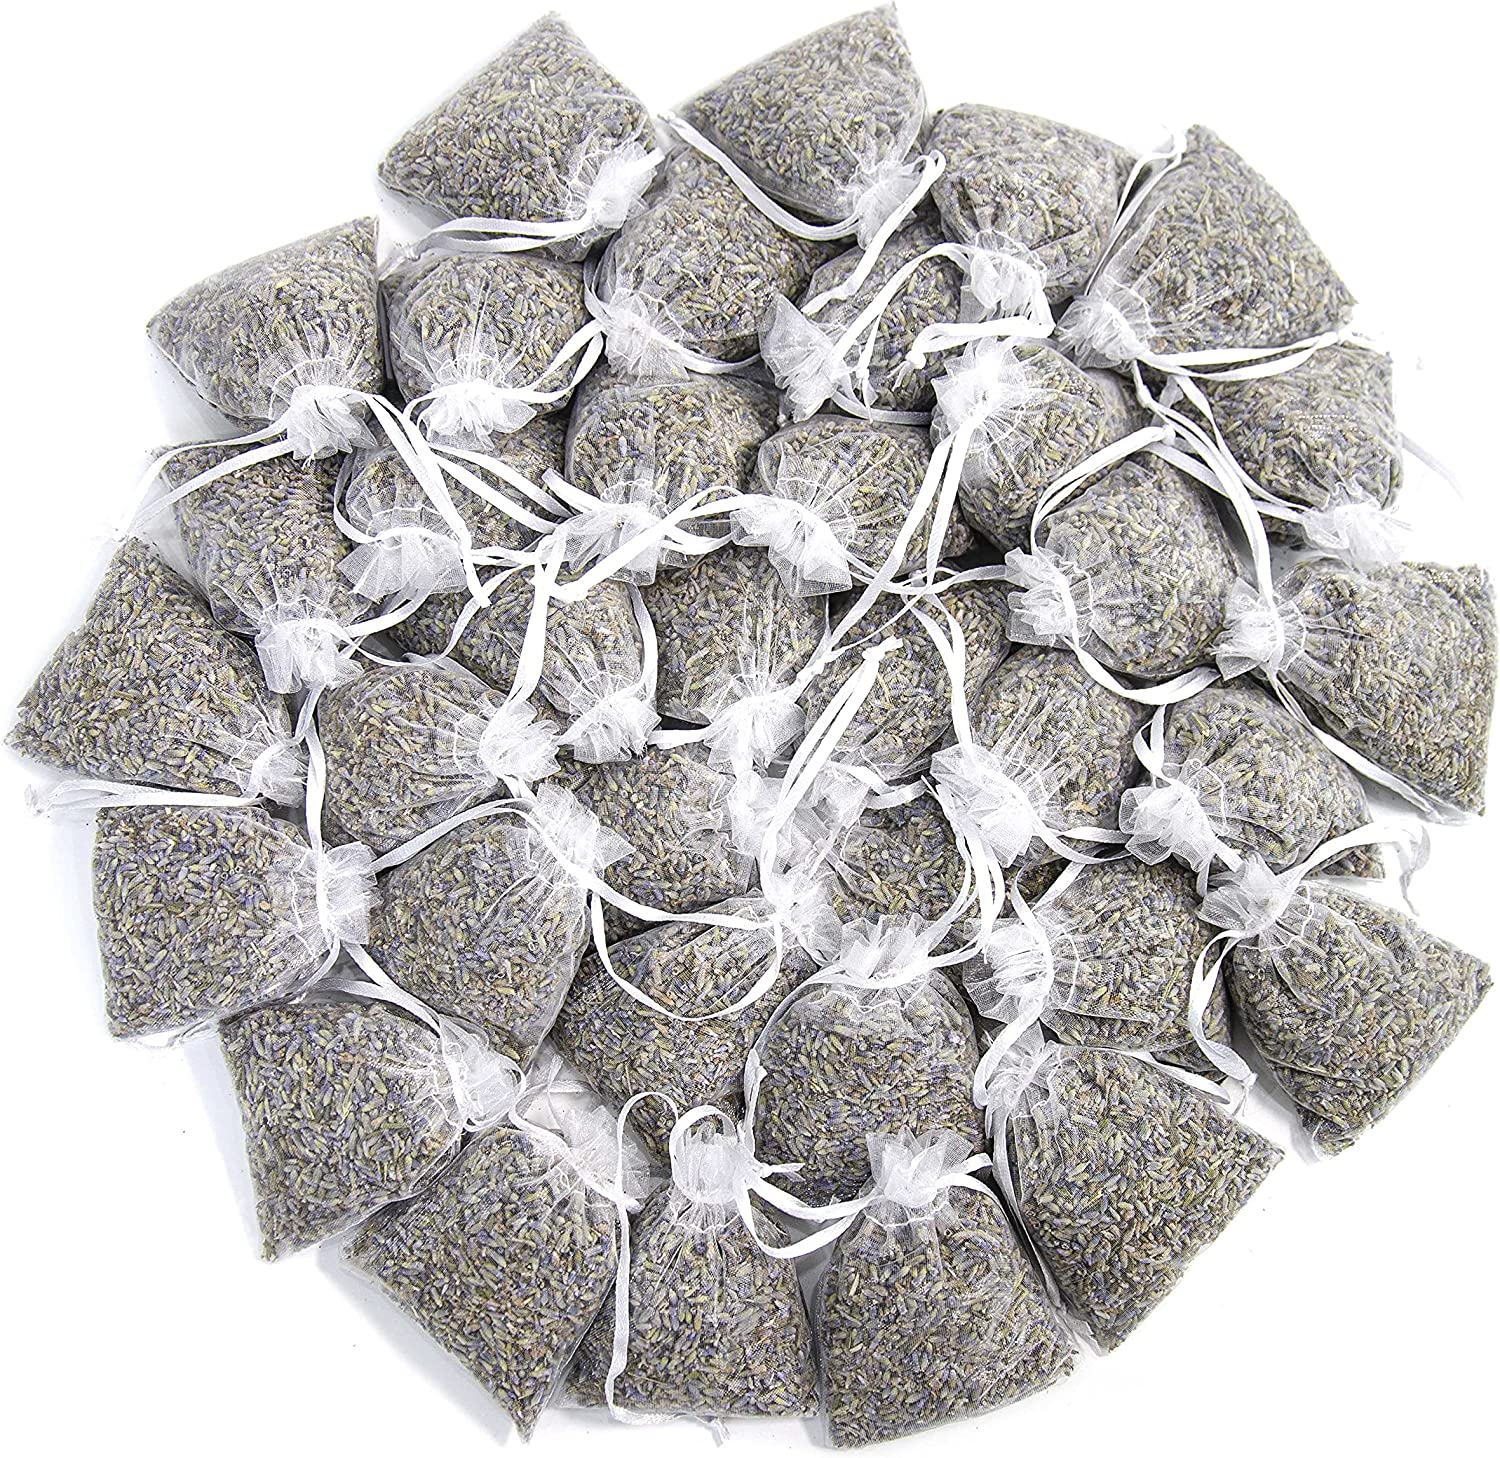 French Lavender Sachets for Drawers and Closets Fresh Scents, Home Fragrance Sachet, Pack of 36, White Sachets, LV-S-C-7